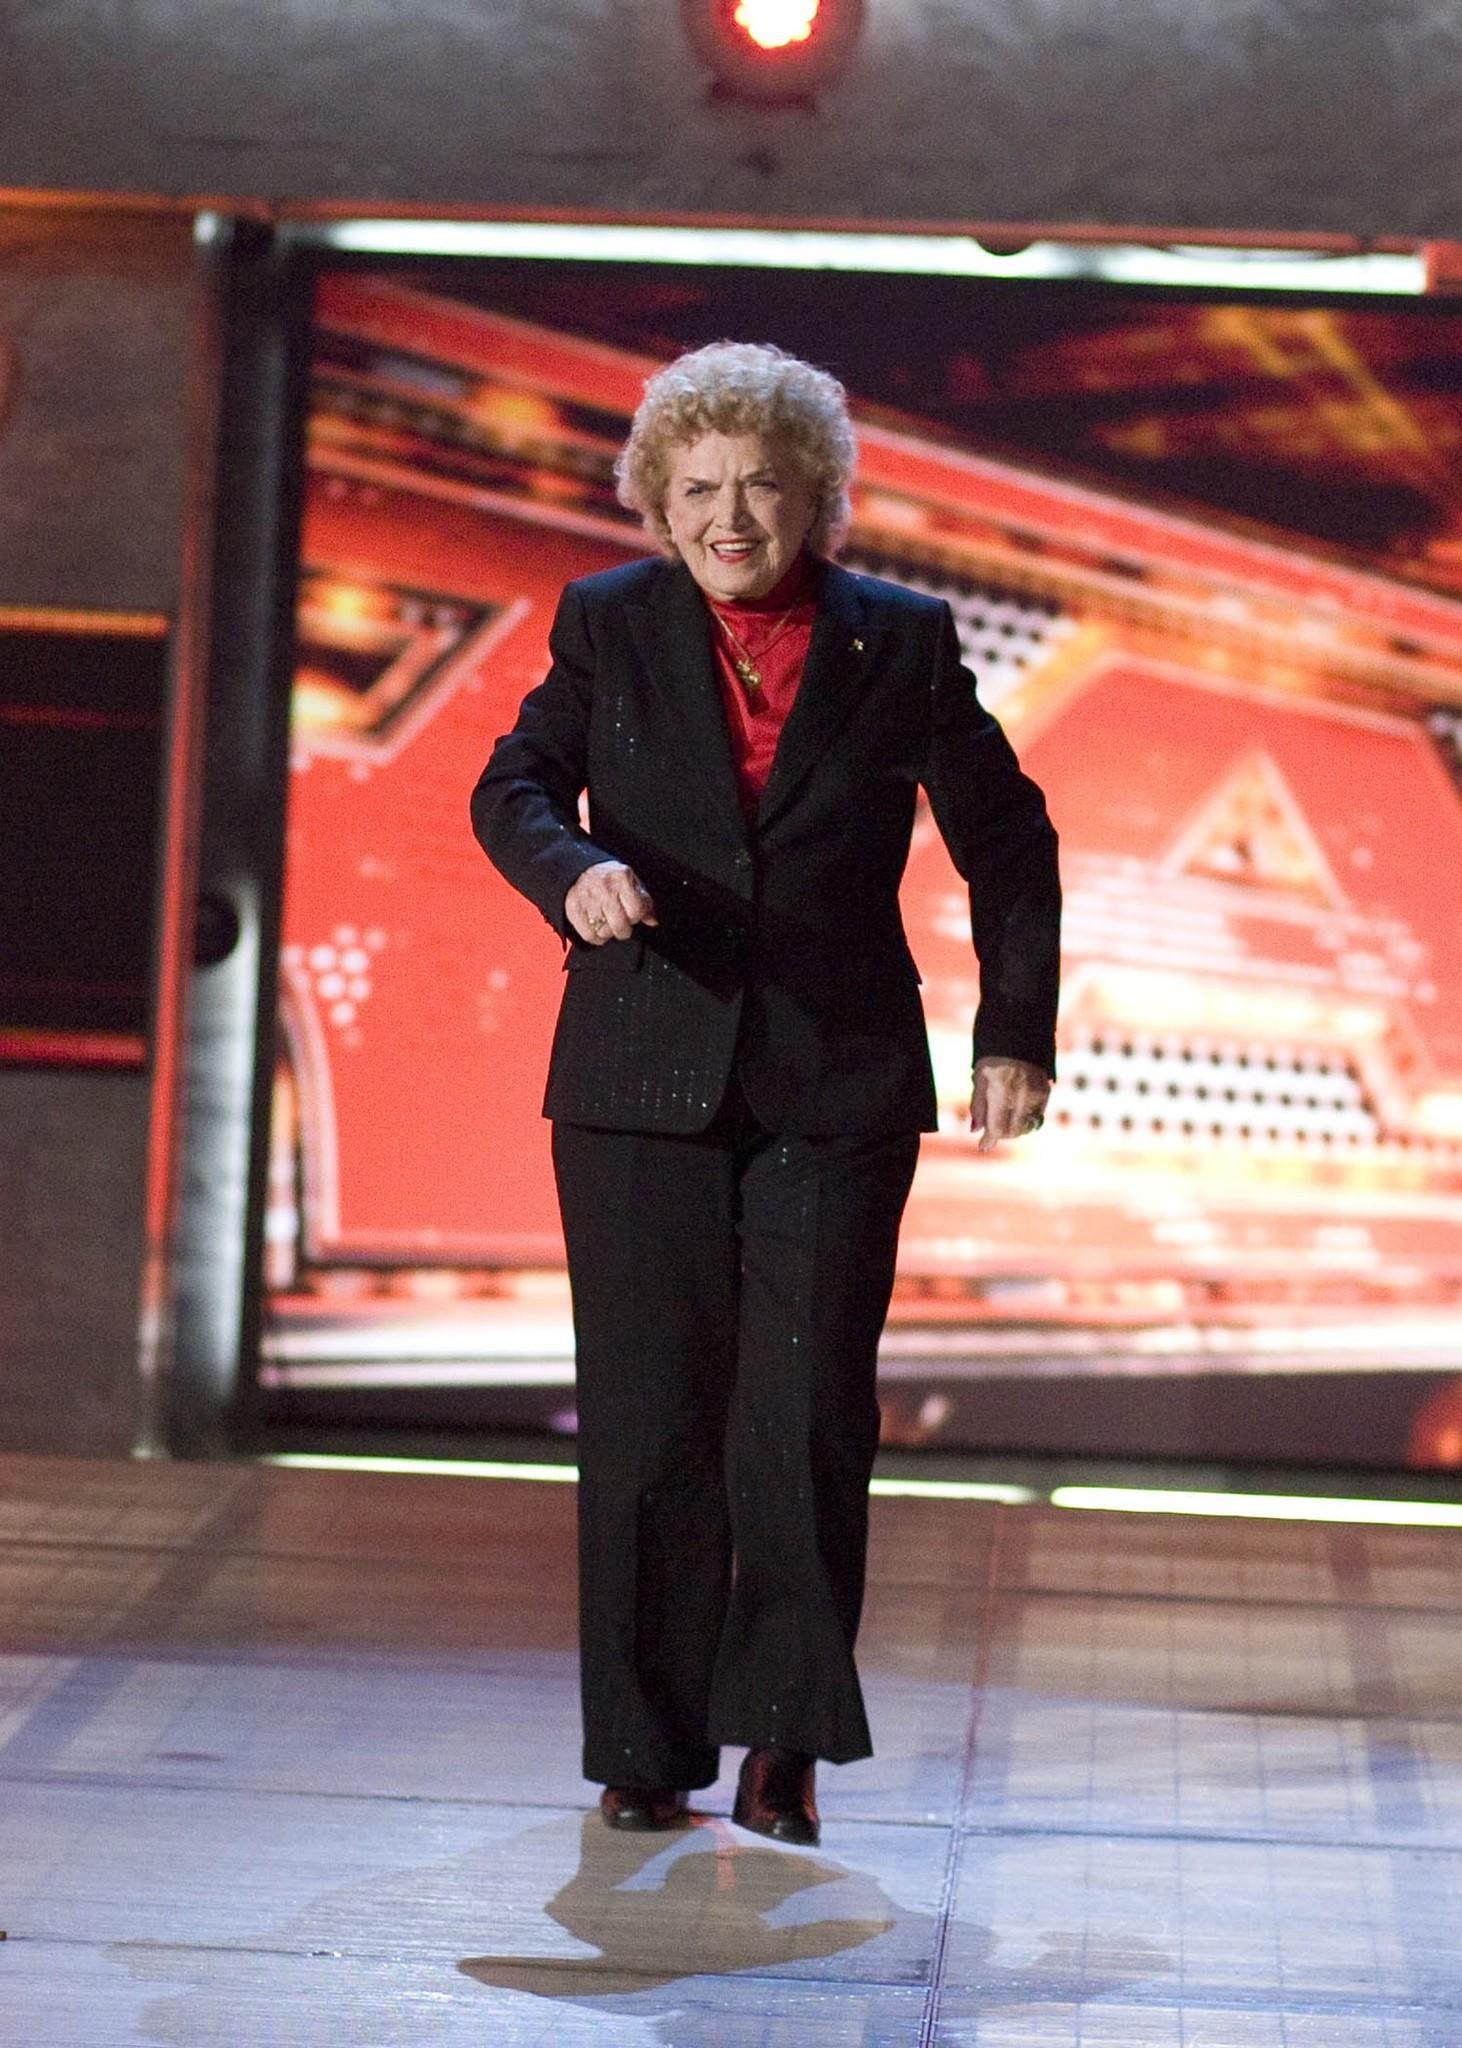 Johnnie Mae Young, a pioneering female wrestler and World Wrestling Entertainment Hall of Fame member, is pictured in this World Wrestling Entertainment, Inc.